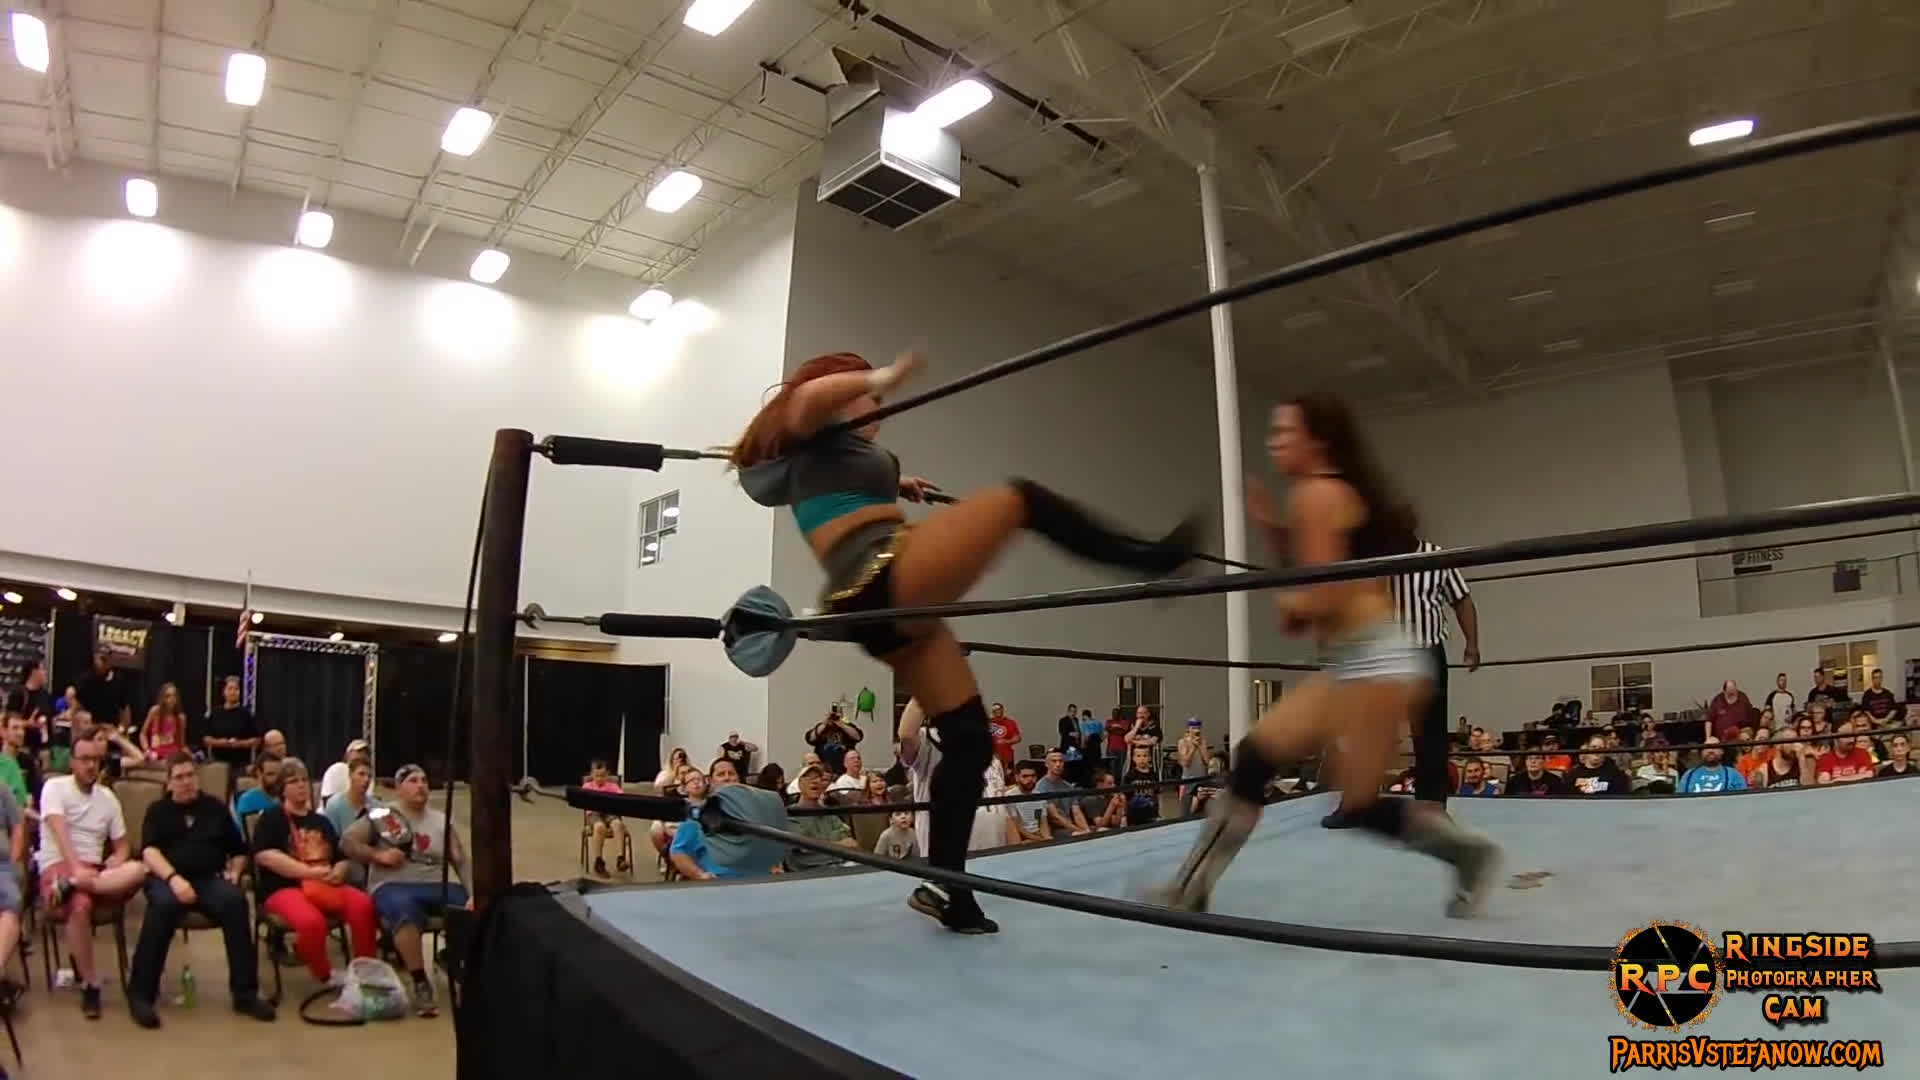 mickie james, parris v stefanow, ringside photographer cam, Mickie James vs Veda Scott GIFs